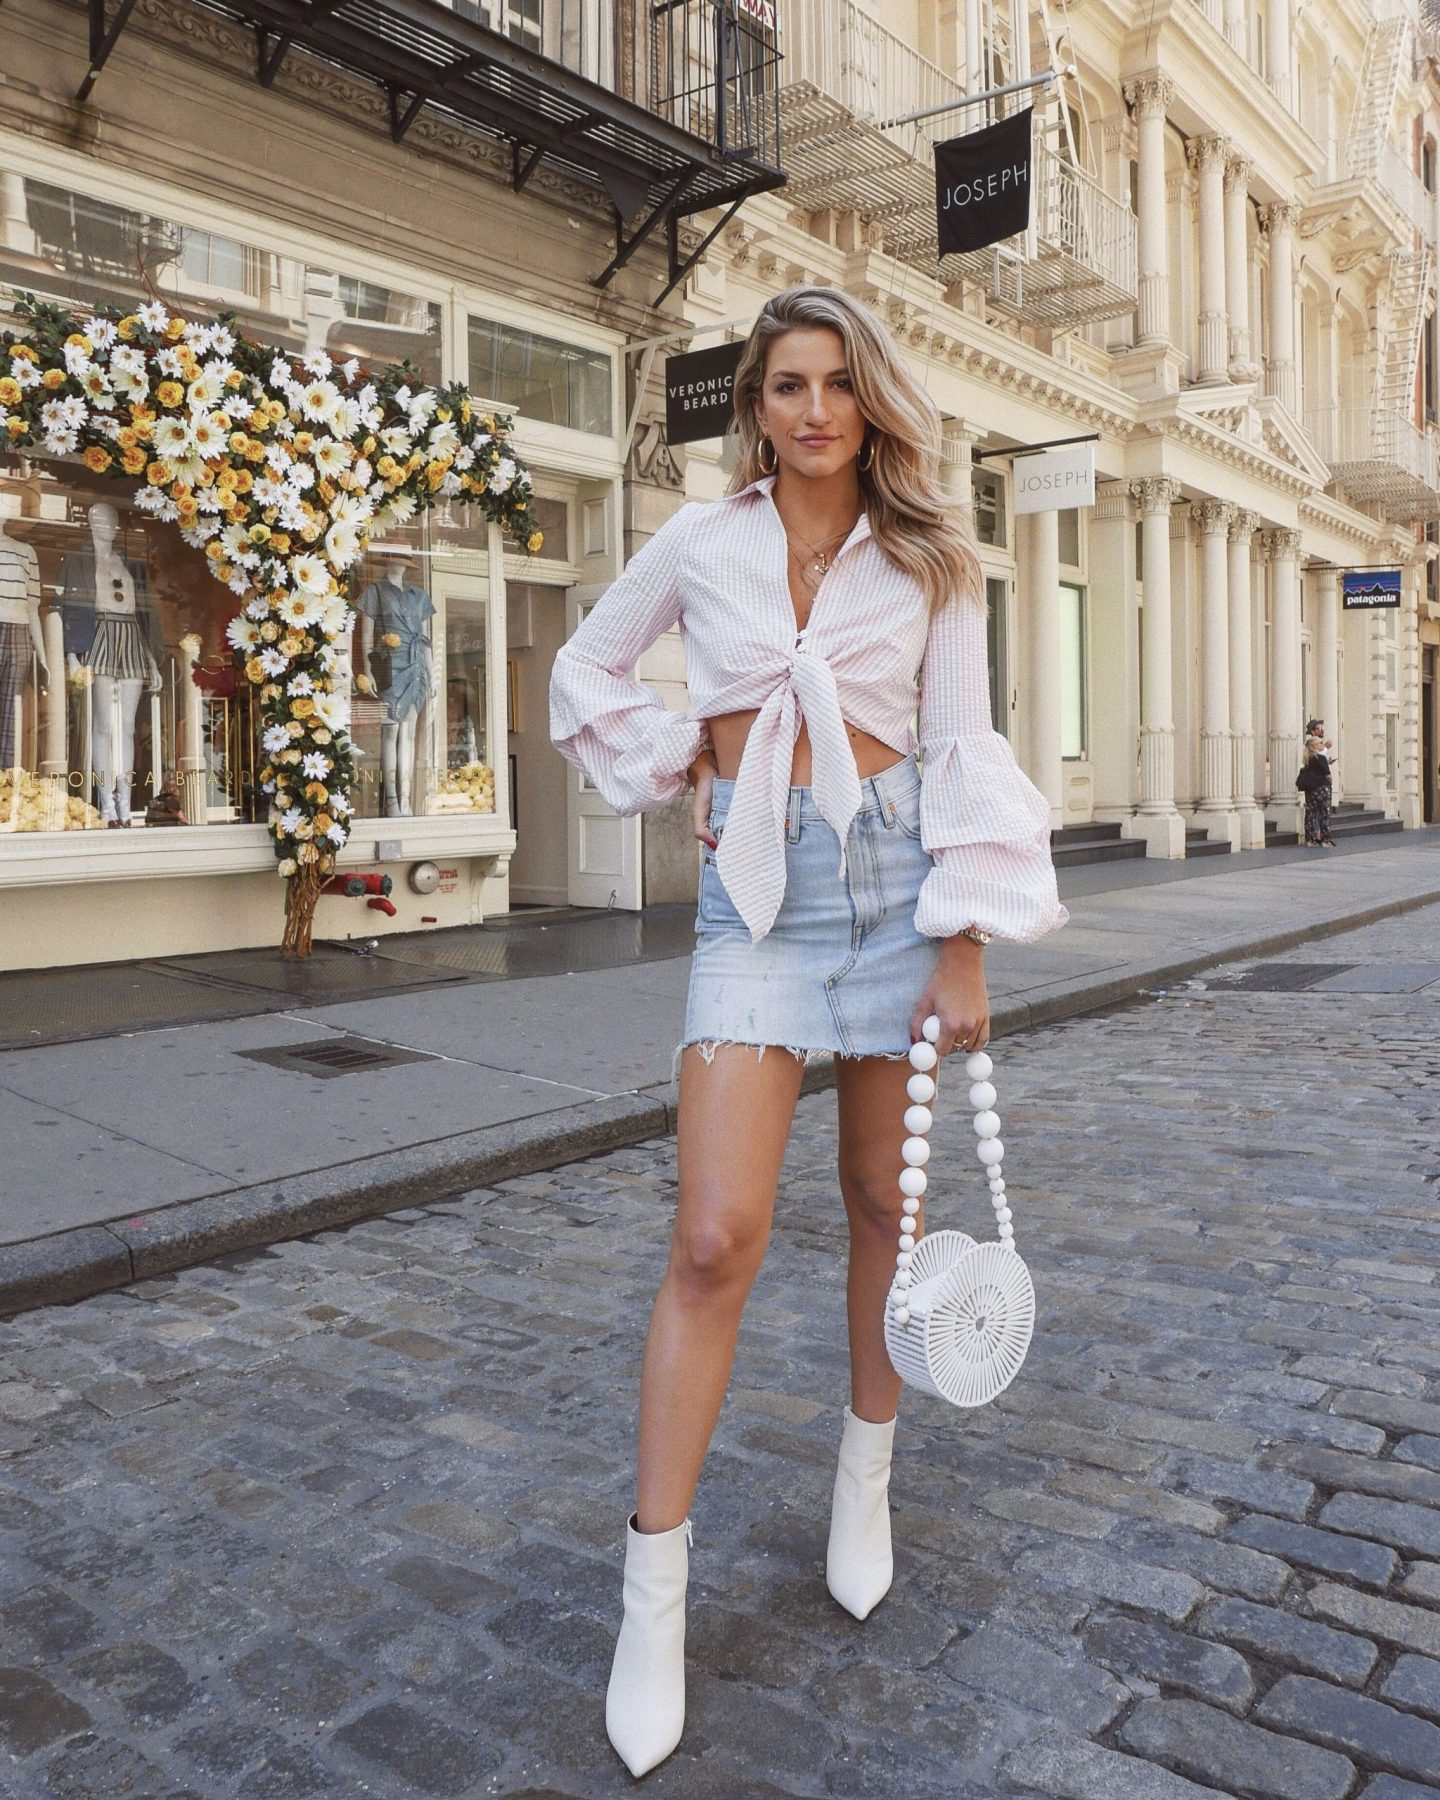 Cassandra DiMicco, Cass DiMicco, Dressed For Dreams, NYC, New York City, New York, Street Style NYC, Street Style 2018, NYC Street Style Street Style Outfits, 2018 Trends, NYC Fashion Blogger, soho, petersyn top, striped tie front top, cult Gaia bag, cult Gaia, white booties, Levis, denim skirt, Levis denim skirt